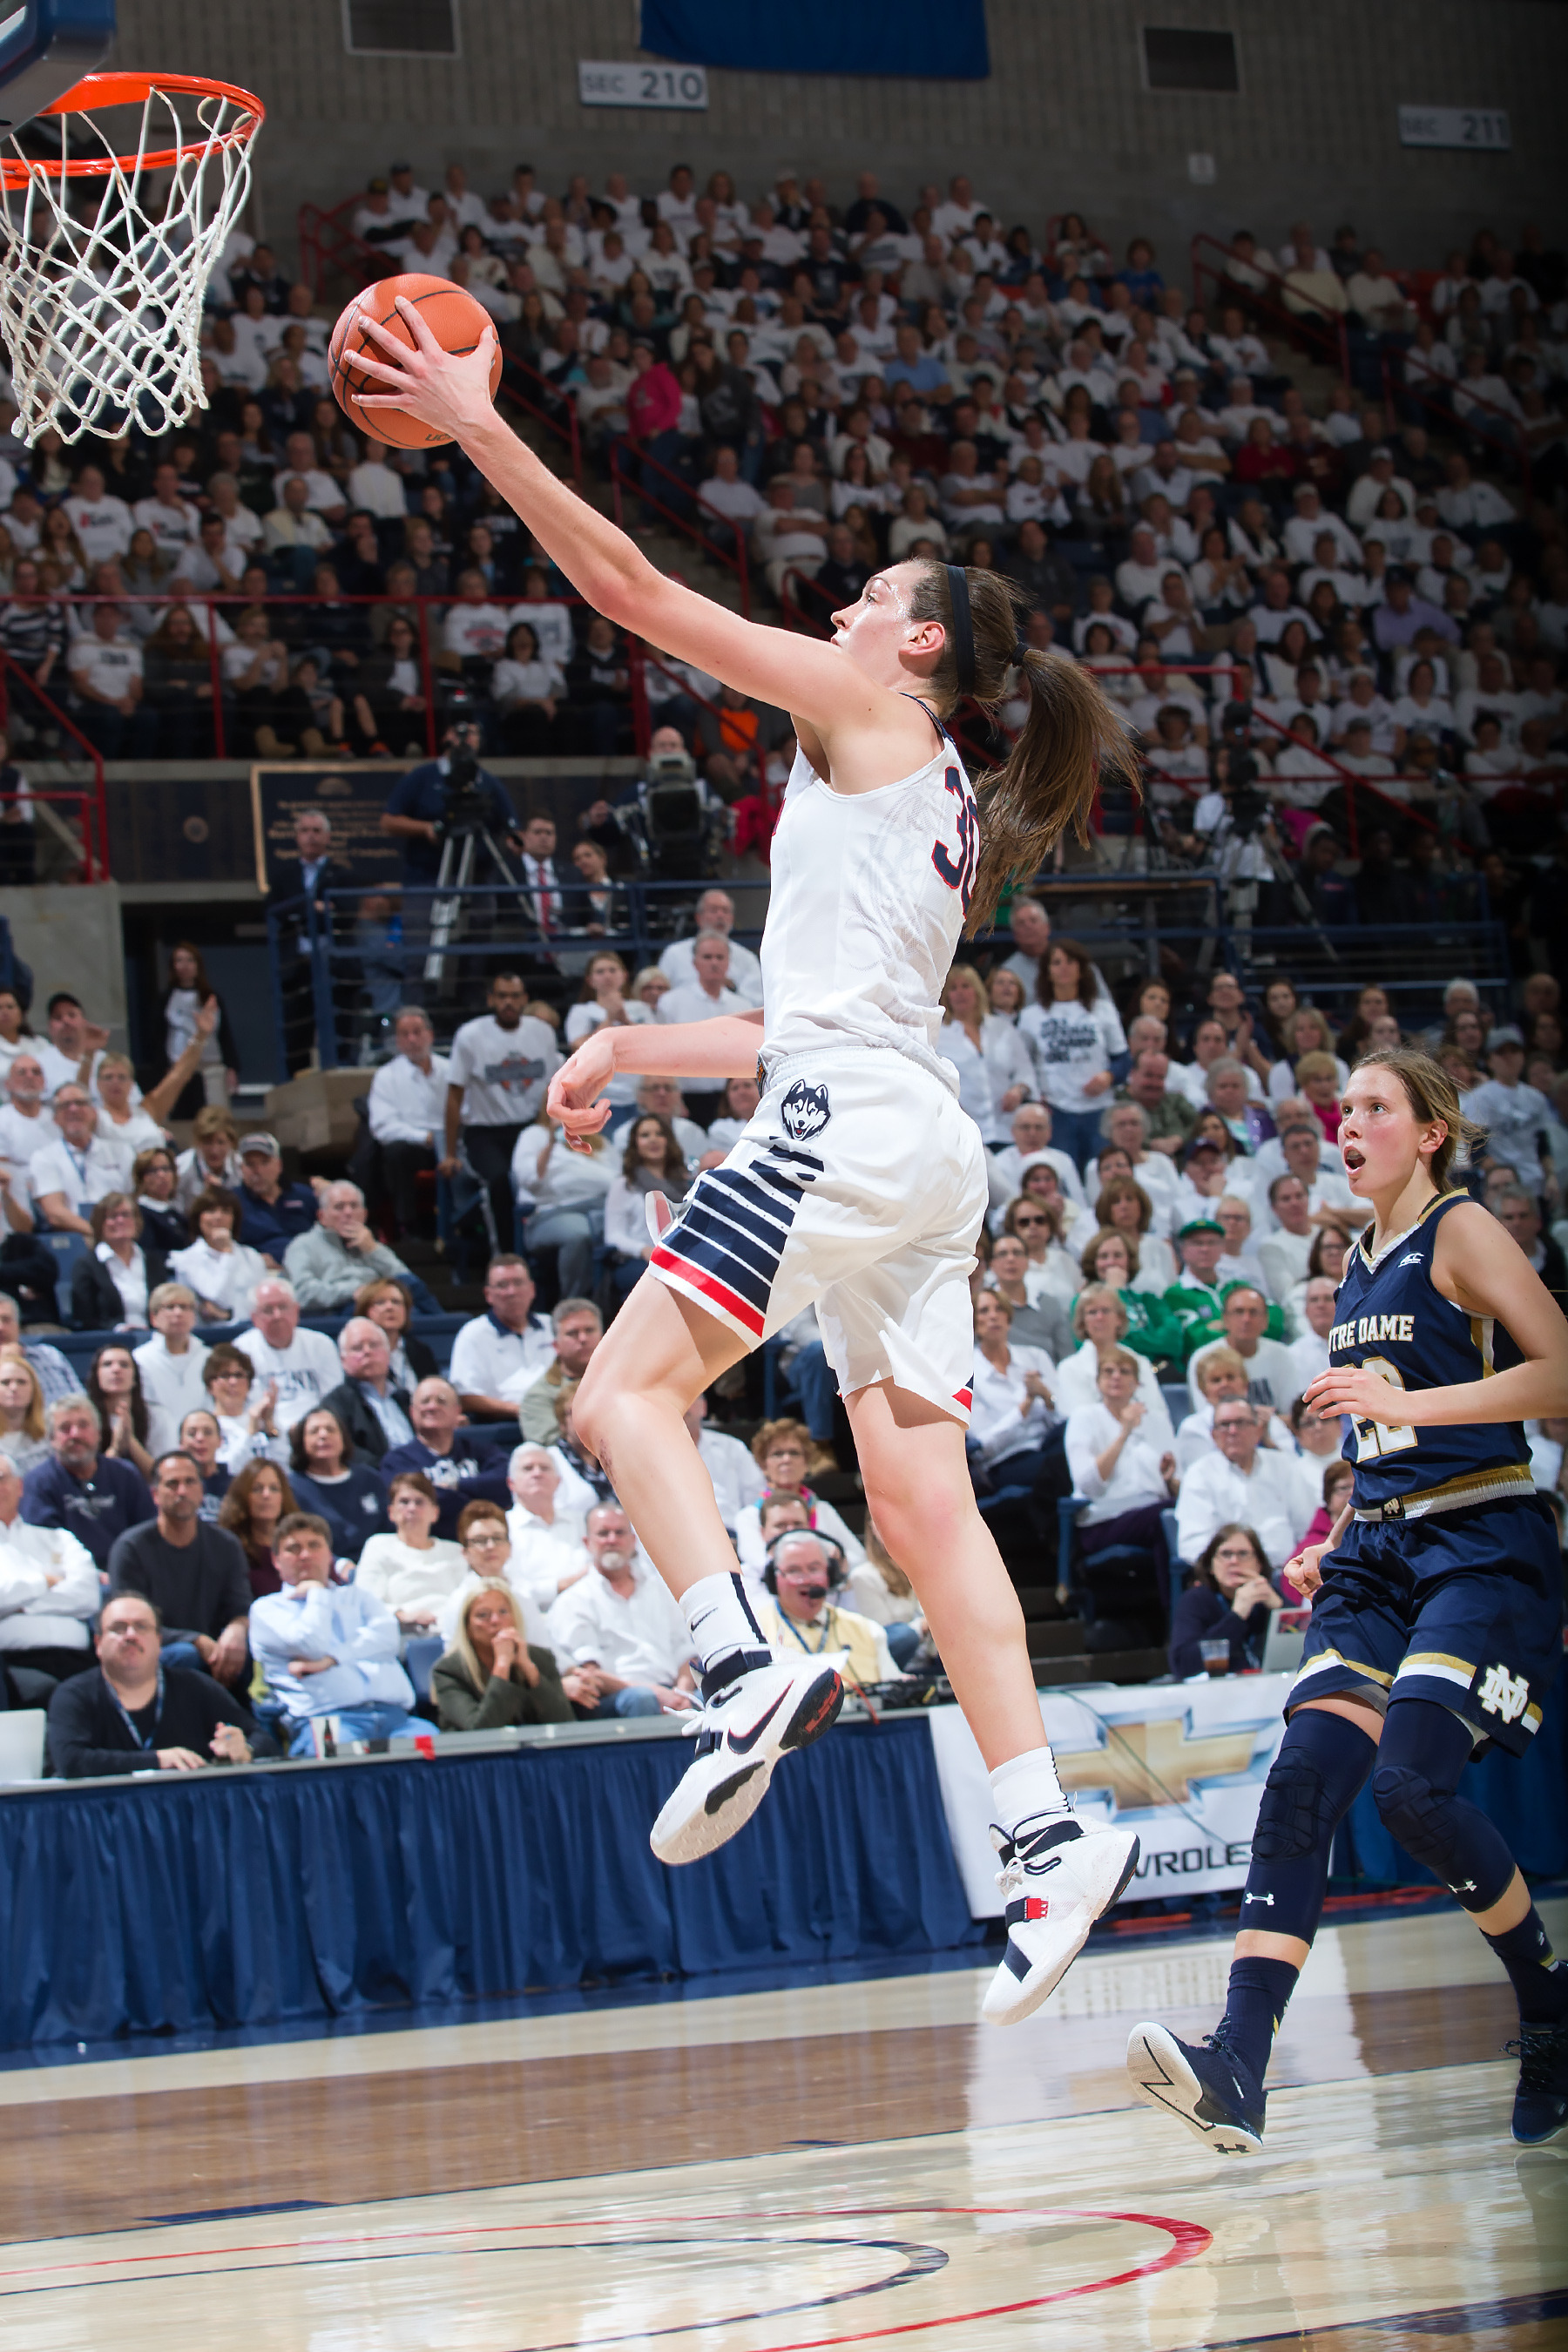 f8ac2724a24 Breanna Stewart, the two-time winner of the Naismith Trophy, is back on